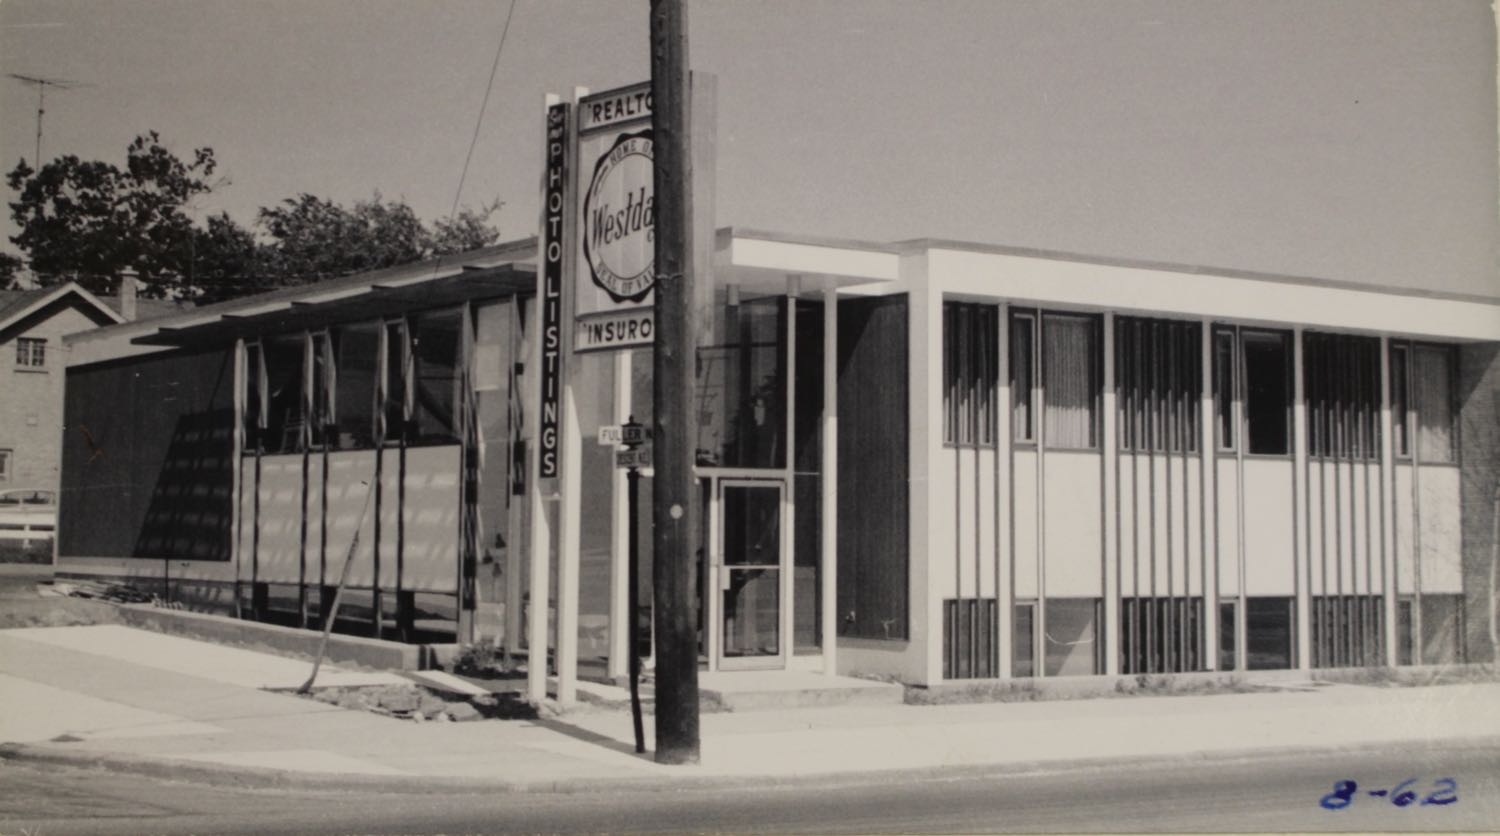 1962 WESTDALE REALTY.   PHOTO COURTESY OF THE CITY OF GRAND RAPIDS COMMUNITY ARCHIVES AND RESEARCH CENTER